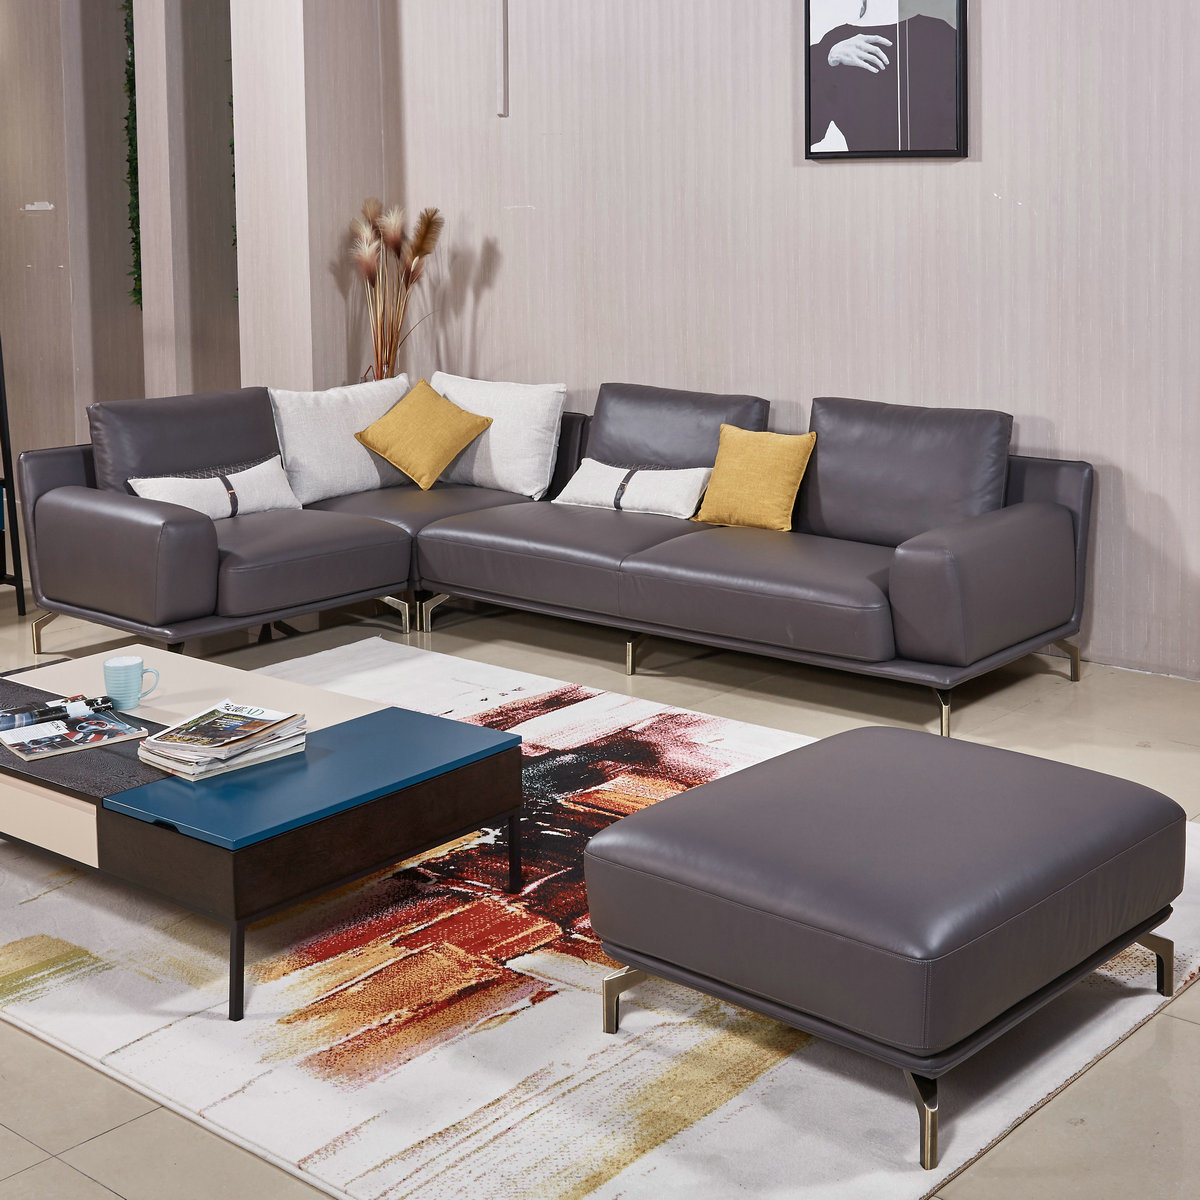 Hot Item New Arrival Factory Wholesale Price Living Room Furniture Leather Sofa Set B09